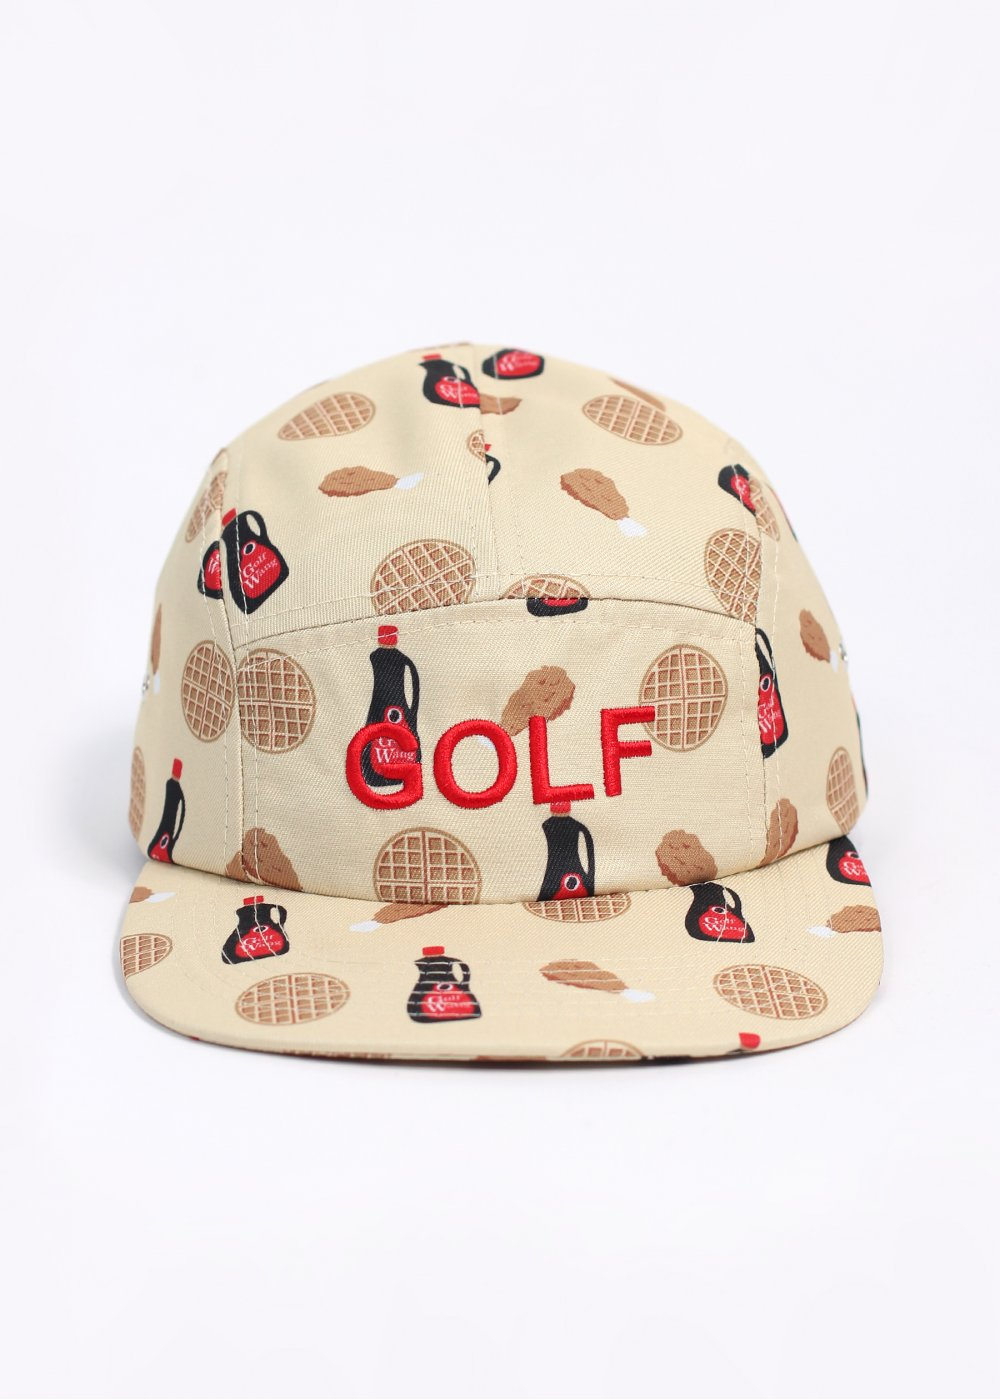 Golf Wang Clothes For Sale 8330fc8c3dde